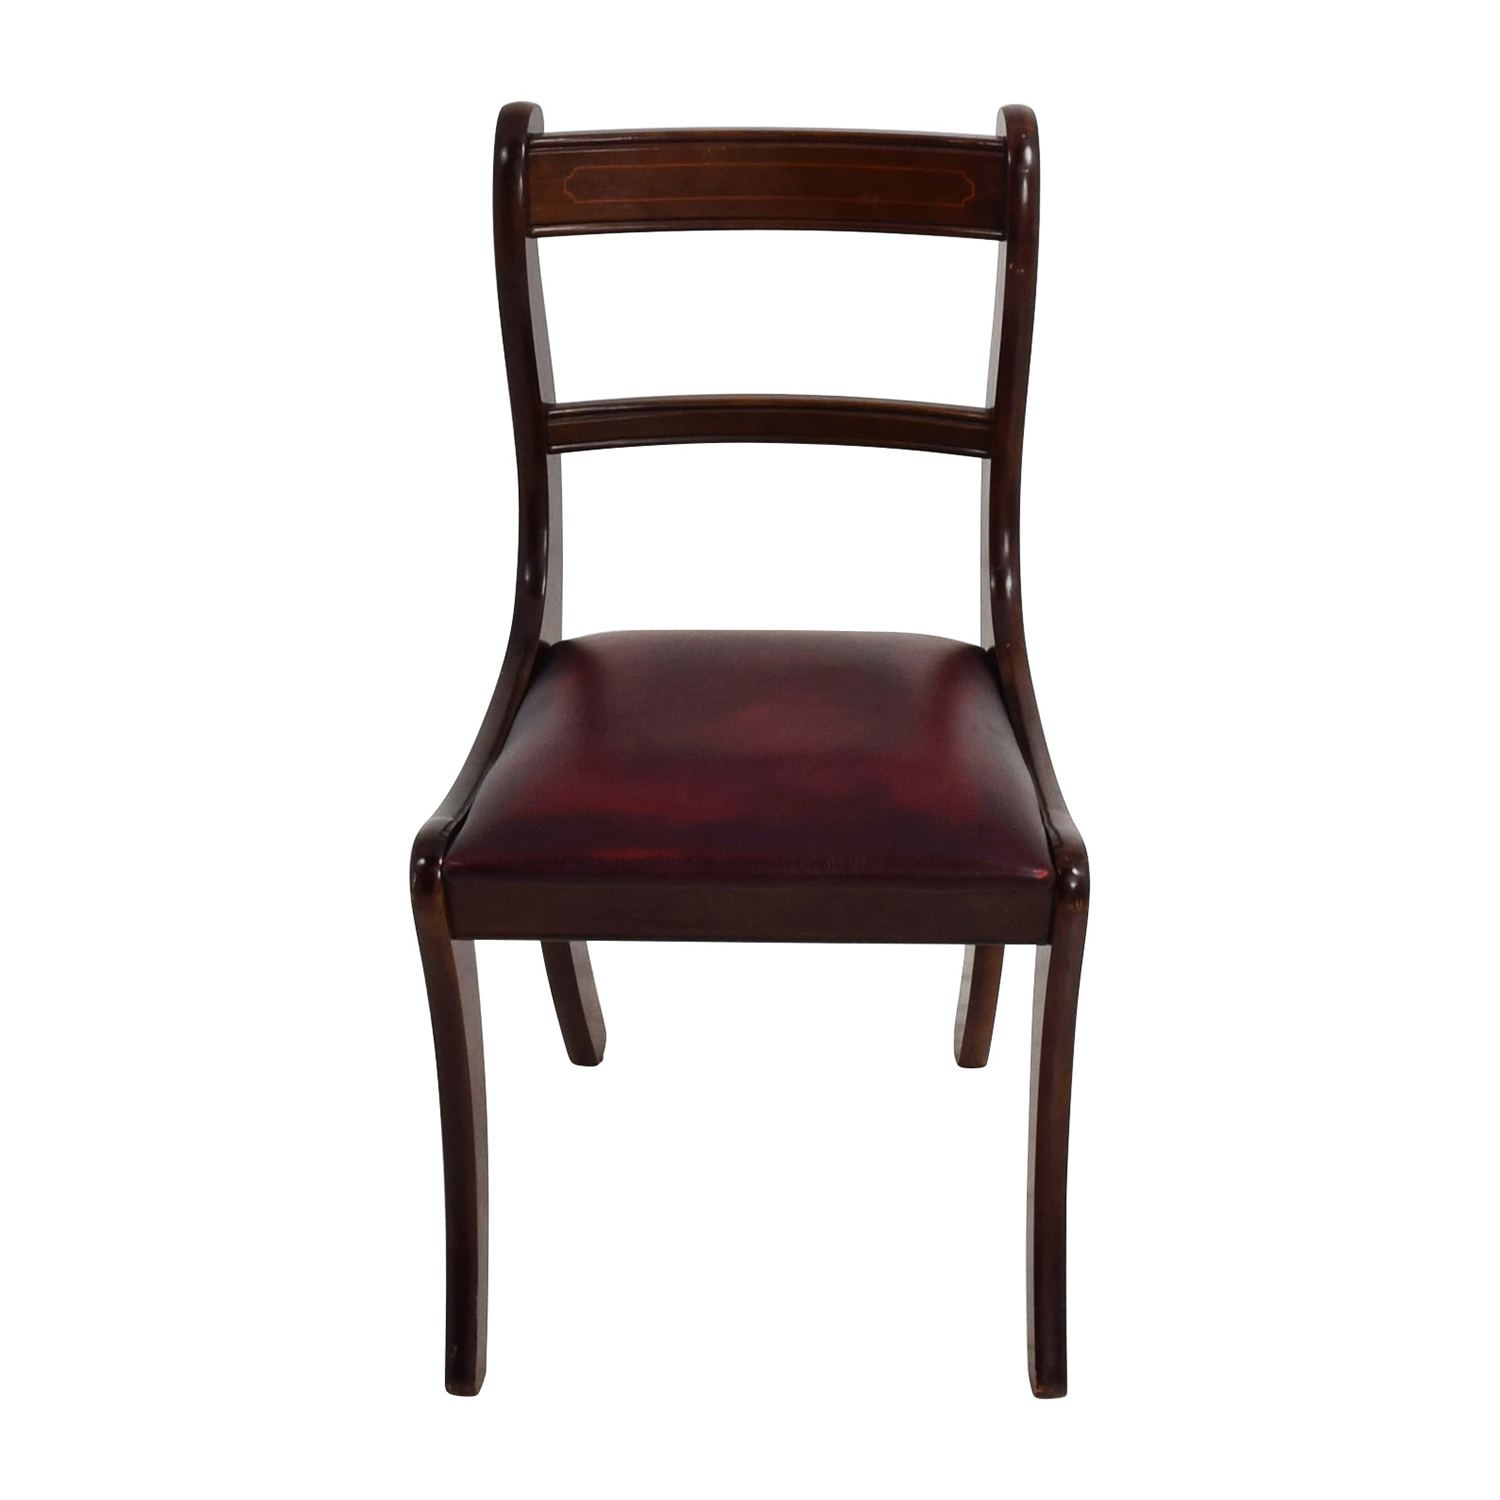 Dark Wood Chair with Leather Seat for sale